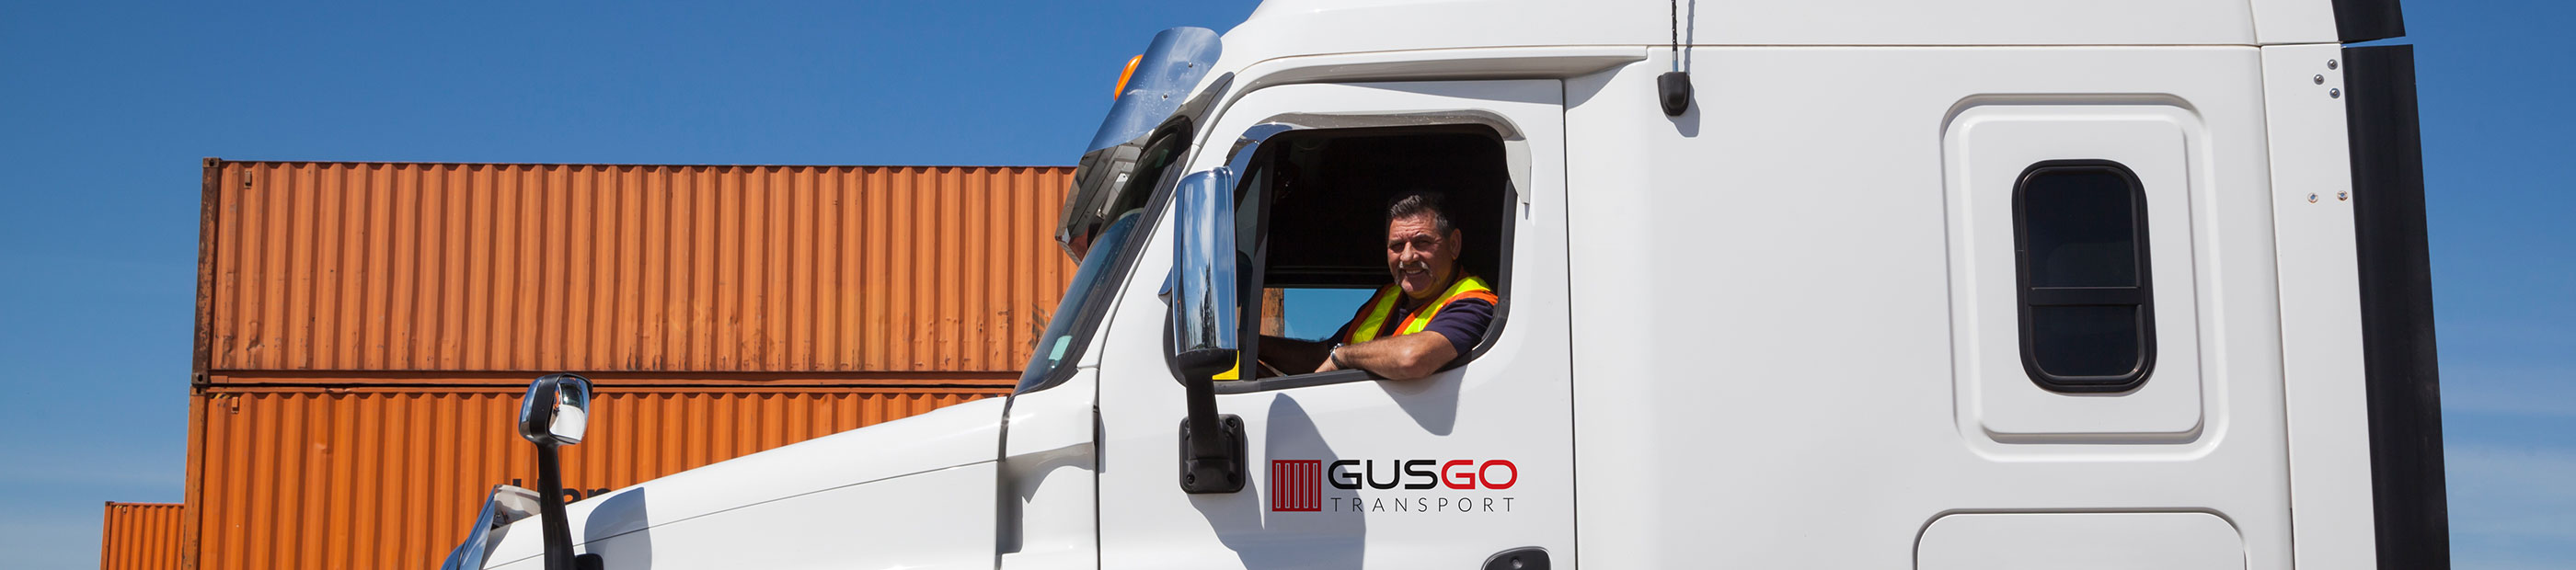 Gusgo Transport truck, containers and driver